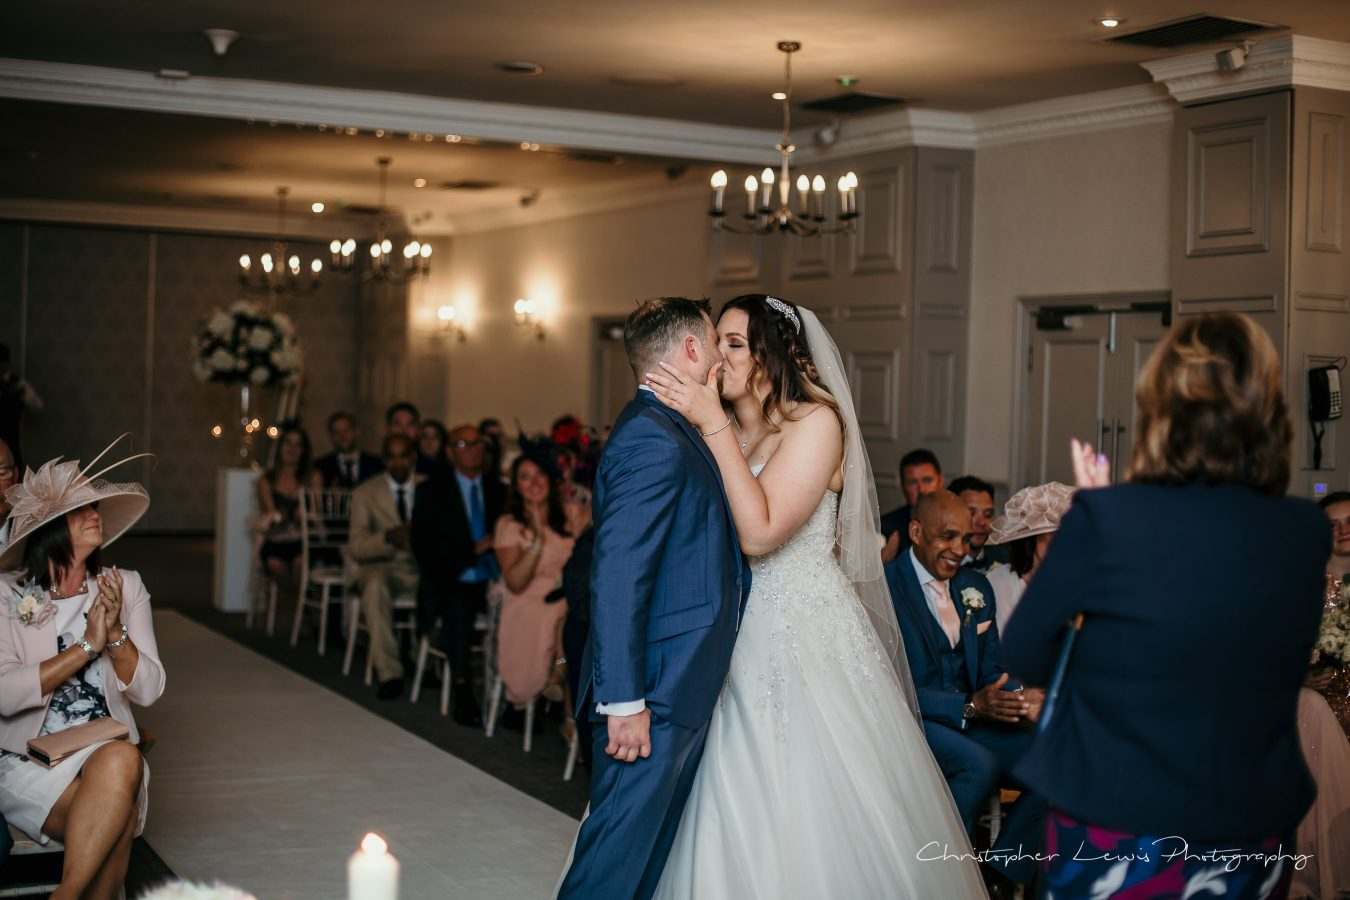 Mottram-Hall-Wedding-Christopher-Lewis-Photography- 74